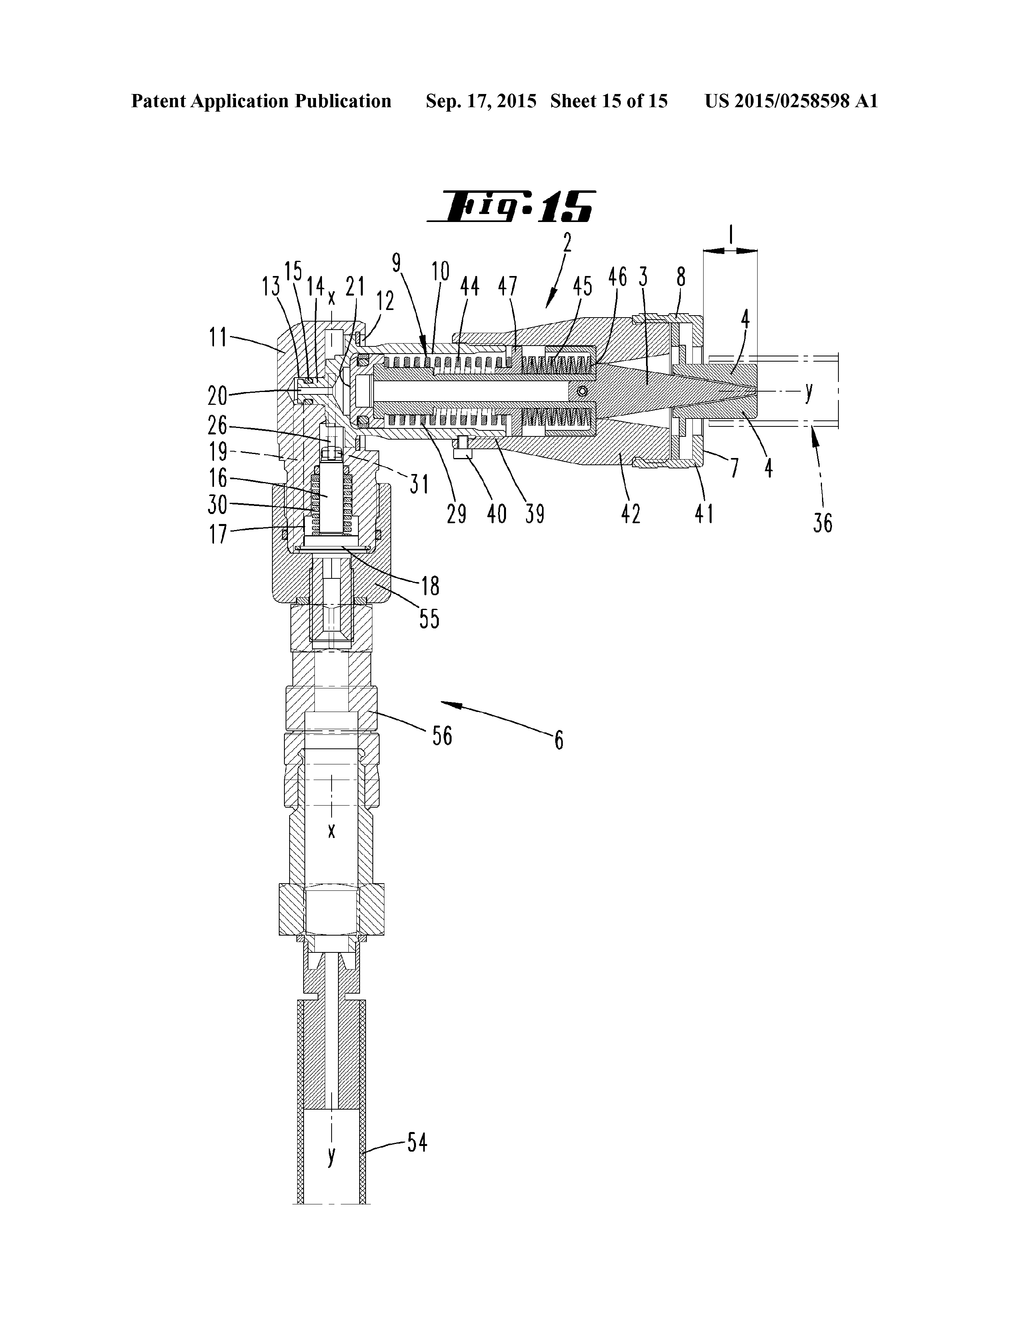 Portable tool portable expanding apparatus hydraulic piston portable tool portable expanding apparatus hydraulic pistoncylinder arrangement and method for operating a portable tool diagram schematic and image ccuart Image collections